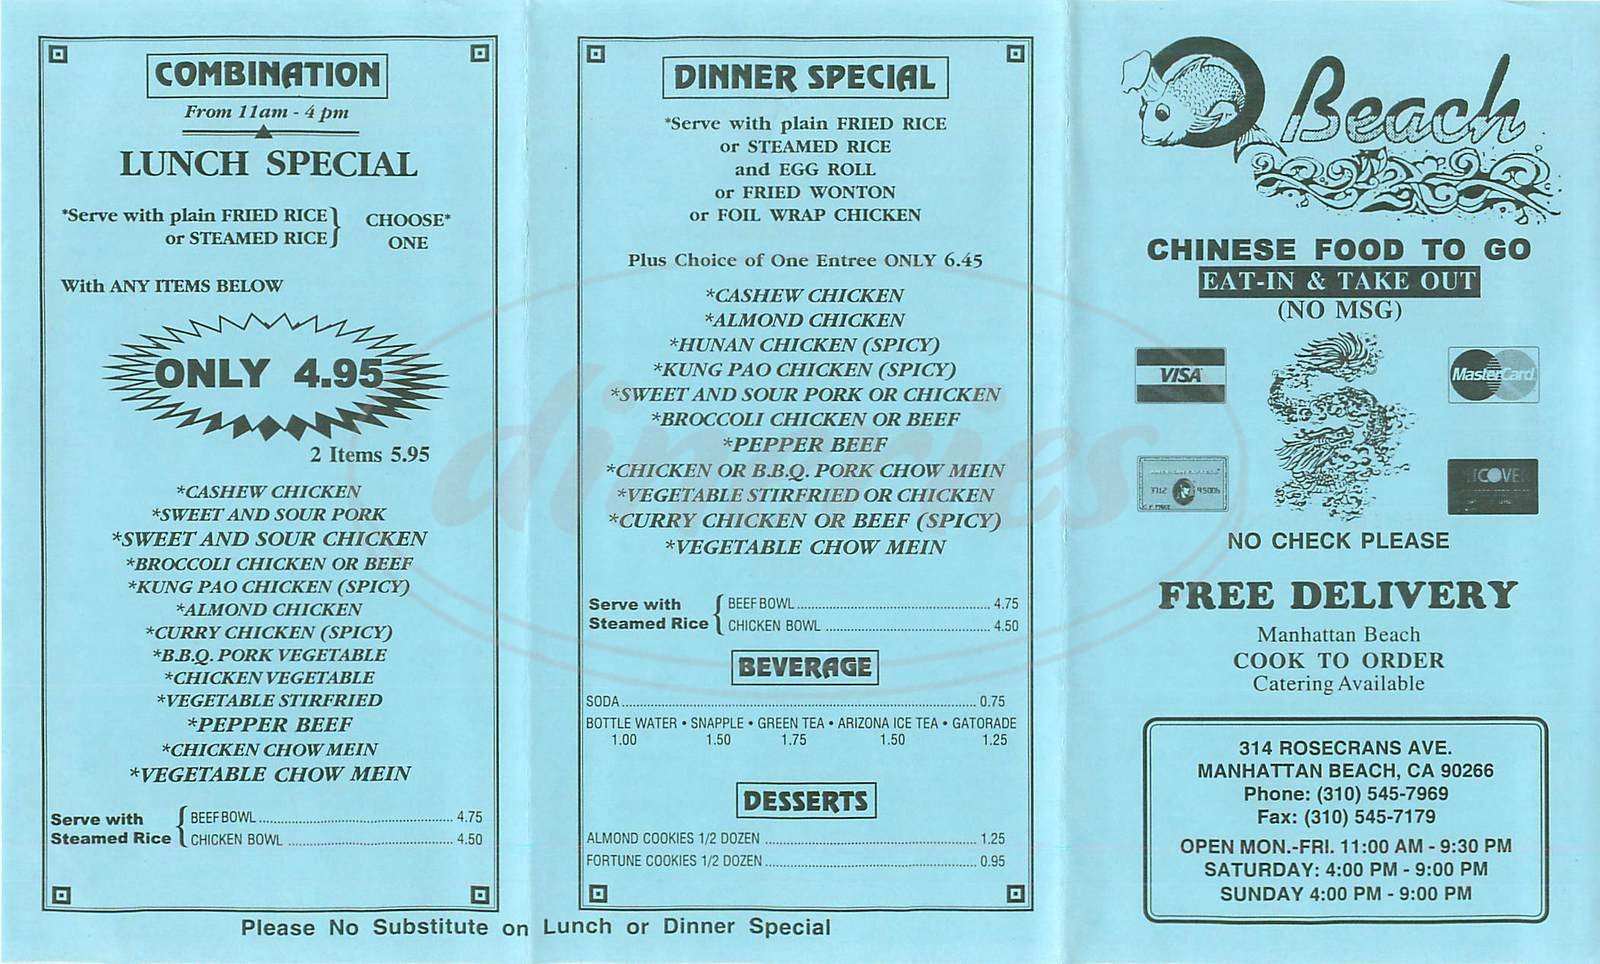 menu for Beach Chinese Food to Go